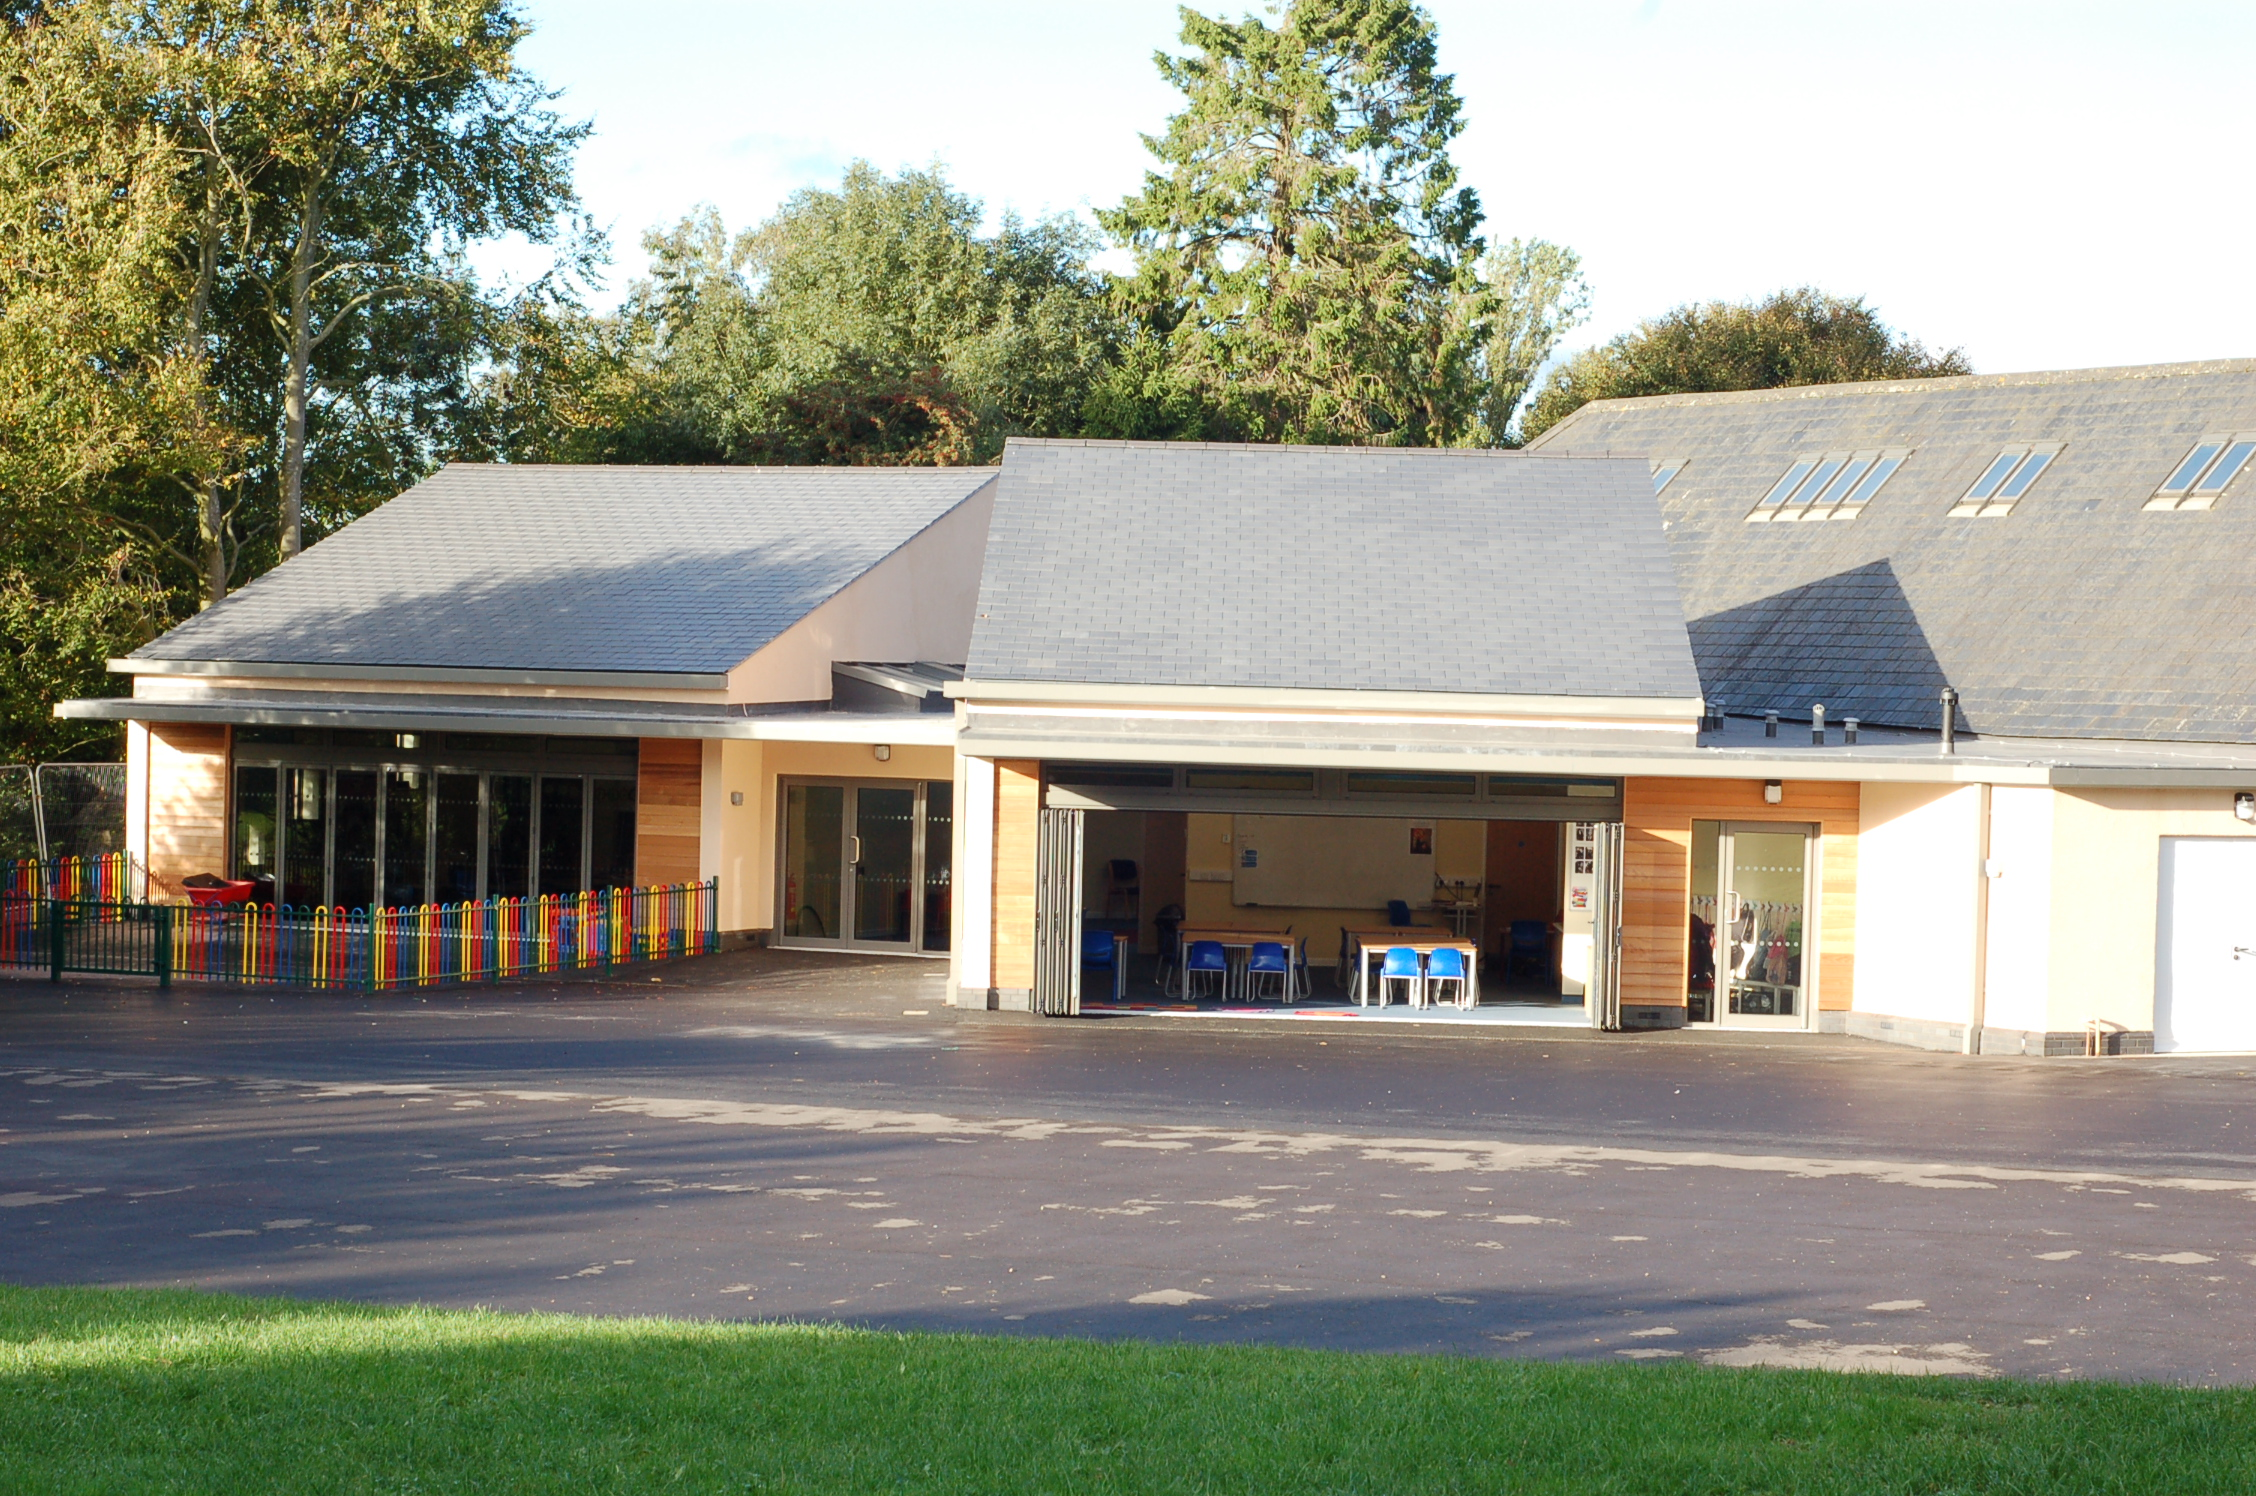 Reception and Year 4 classrooms, built 2013